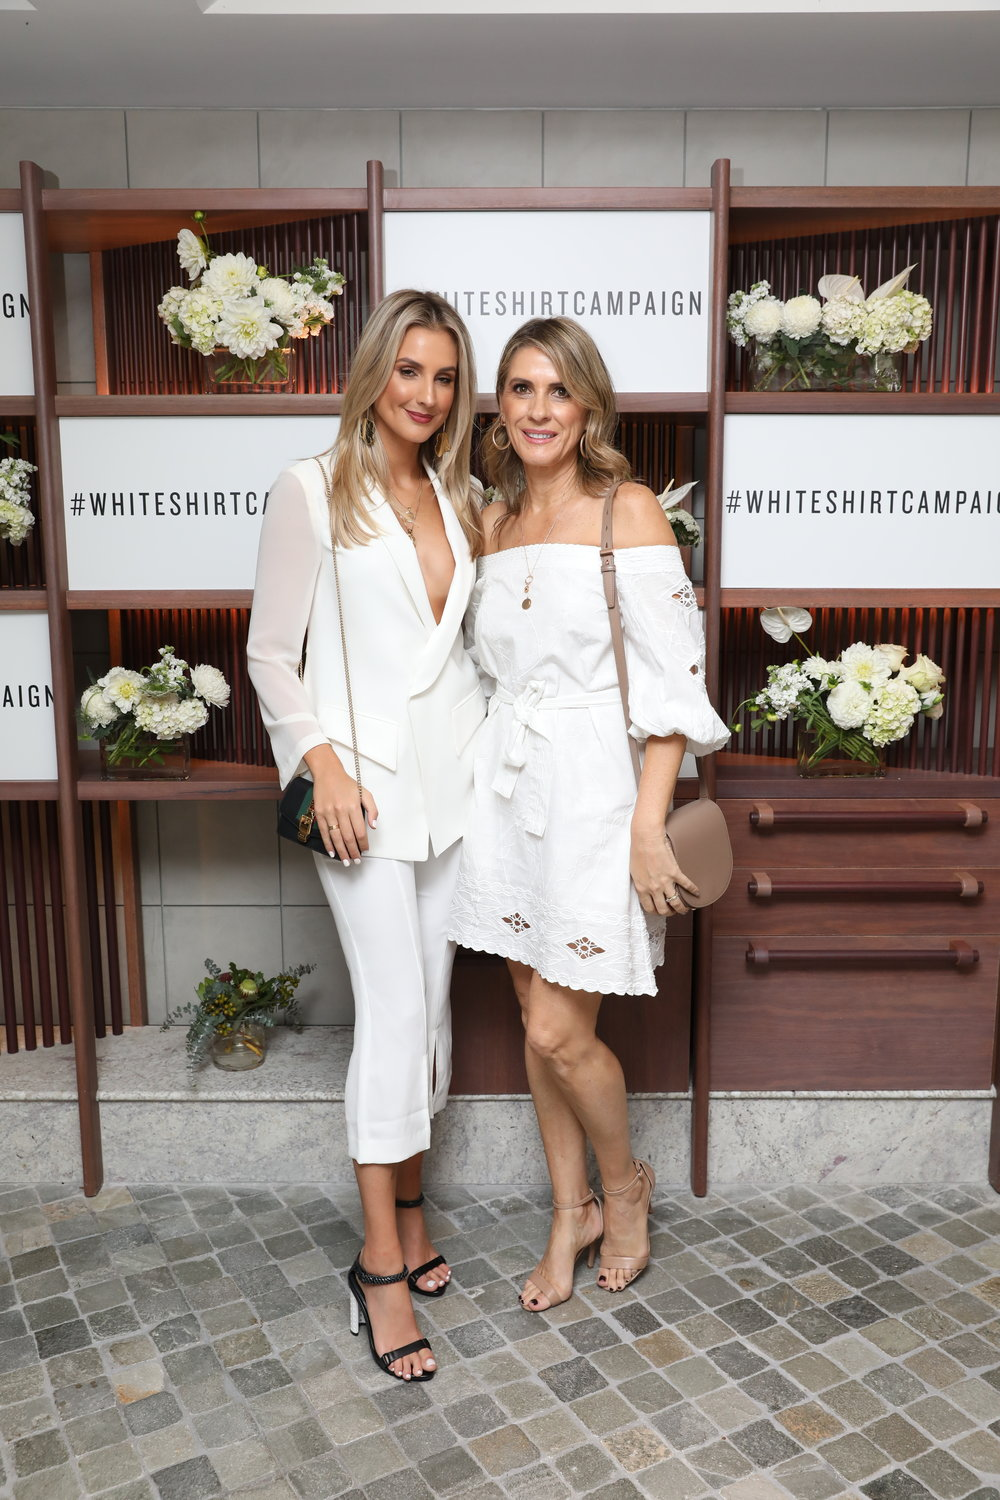 kate-and-co-projects-witchery-ocrf-white-shirt-campaign-2018-laura-dundovic-shirley-dundovic.JPG